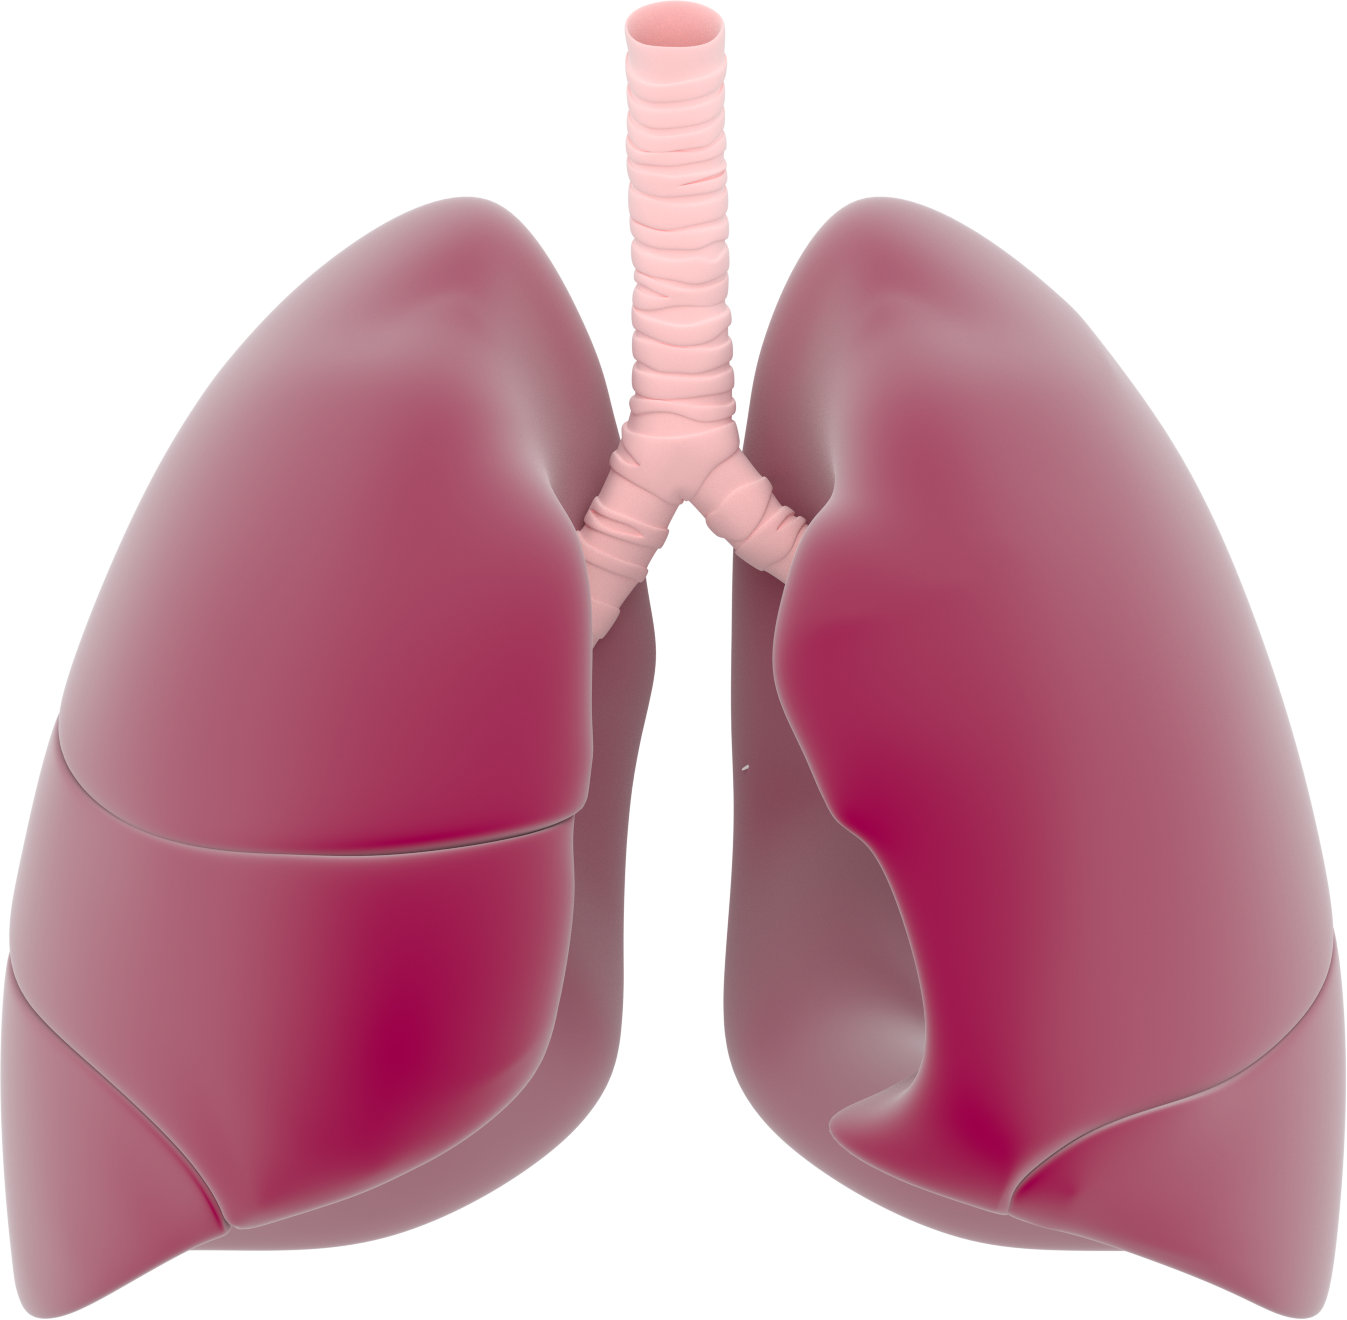 Respiratory system lung sacs clipart no background clip royalty free stock Lungs PNG Transparent Images   PNG All clip royalty free stock